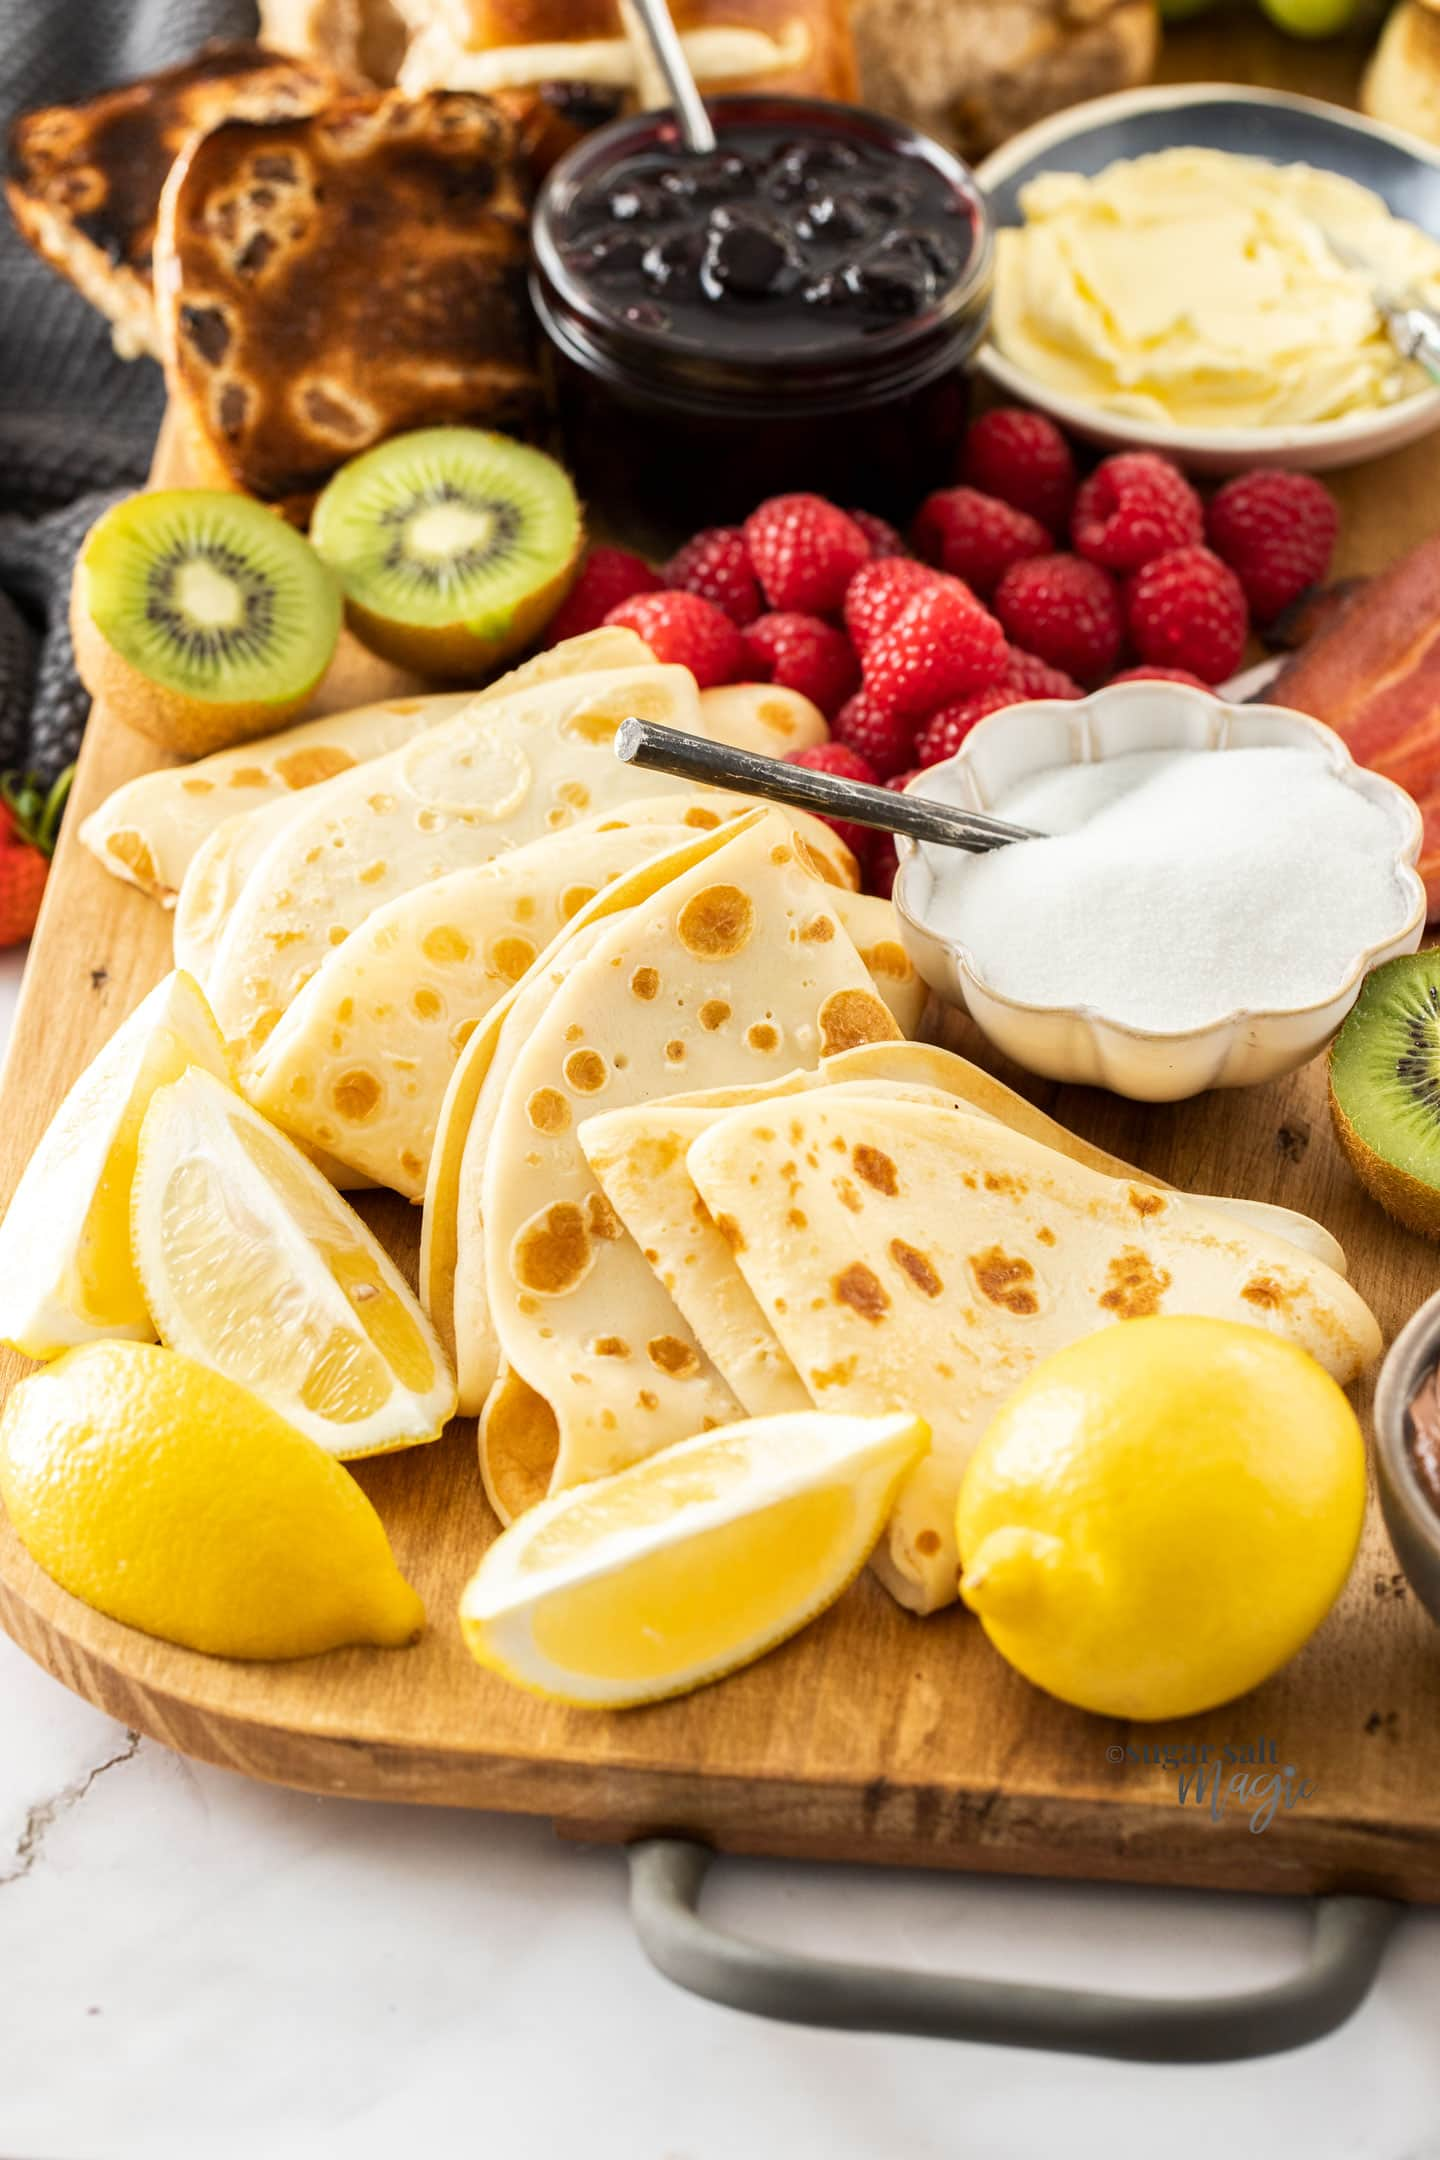 English pancakes with lemon and sugar on a breakfast platter.